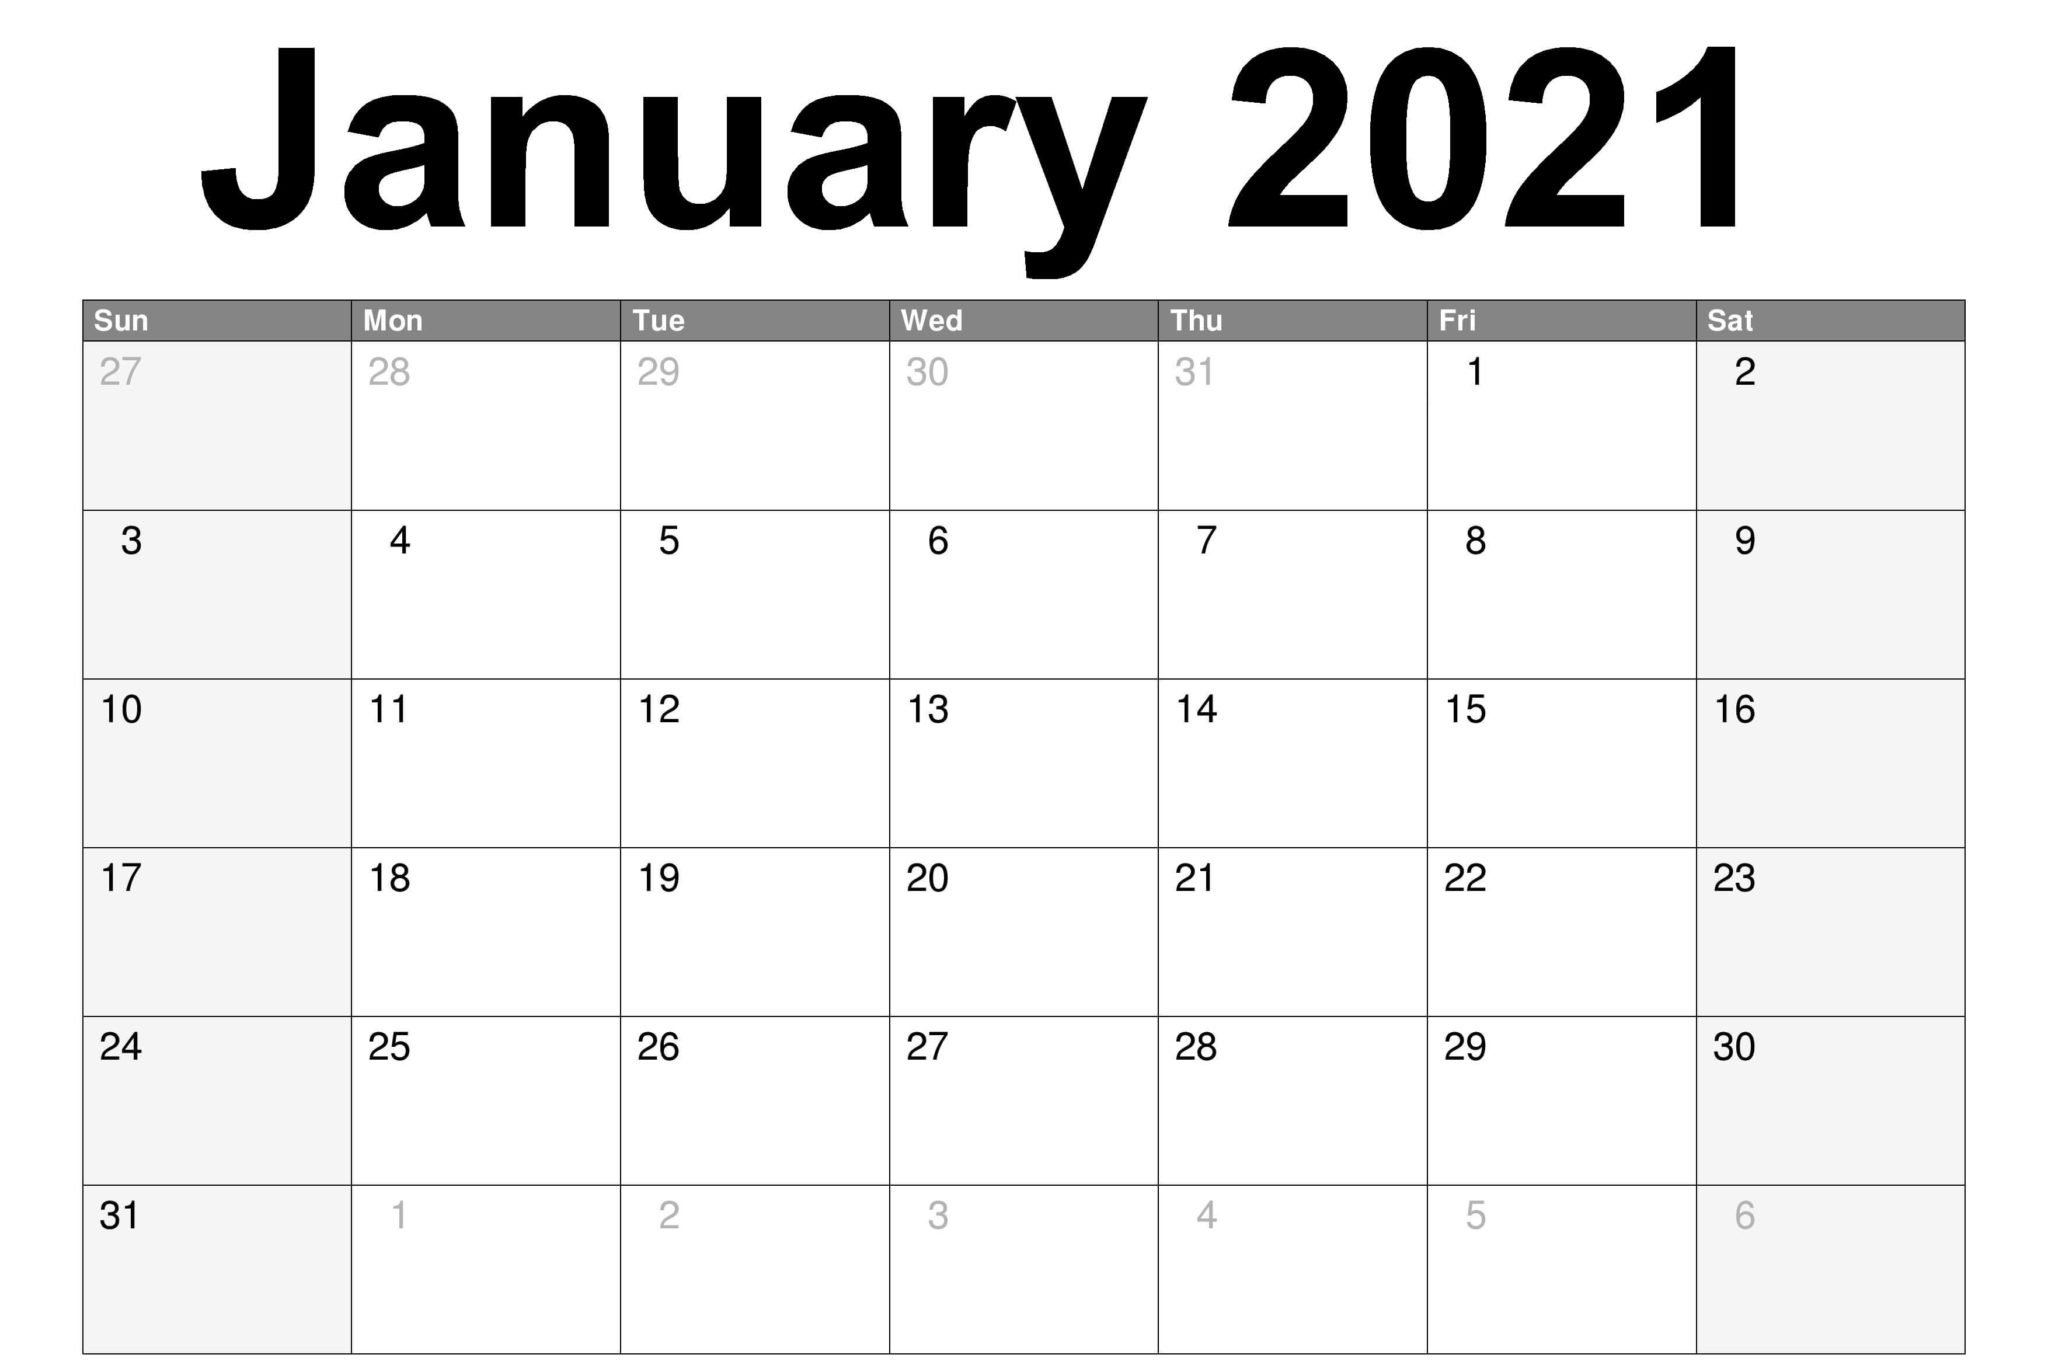 Blank January 2021 Calendar Pdf, Word, Excel Template intended for Printable 2021 Monthly Calendar Template